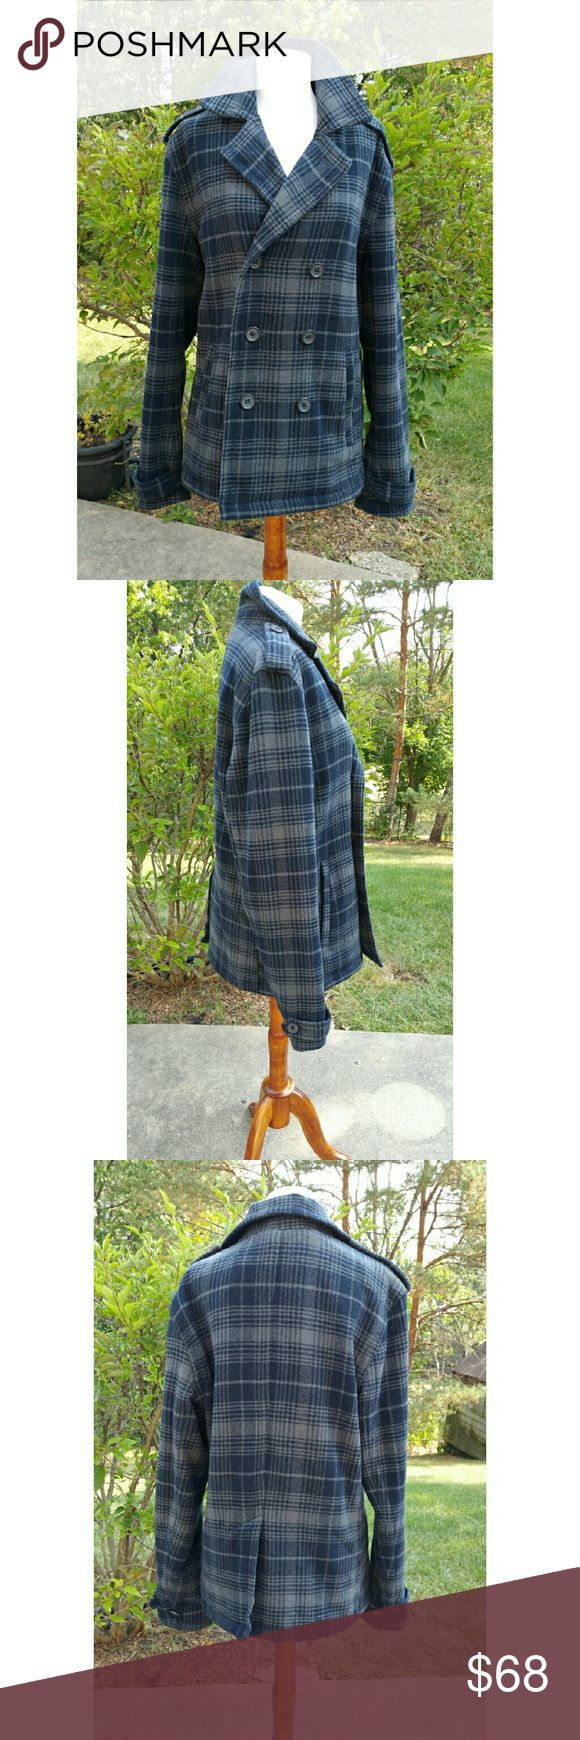 Legendary Goods Blue and Grey Plaid Pea Coat sz M This neat coat from Legendary Goods will keep you warm and in style this coming winter. It is a blue and gray watch plaid pea coat in good condition ready for you!  22in armpit to armpit 27 and 1/2 in in length 19in shoulder-to-shoulder Legendary goods Jackets & Coats Pea Coats